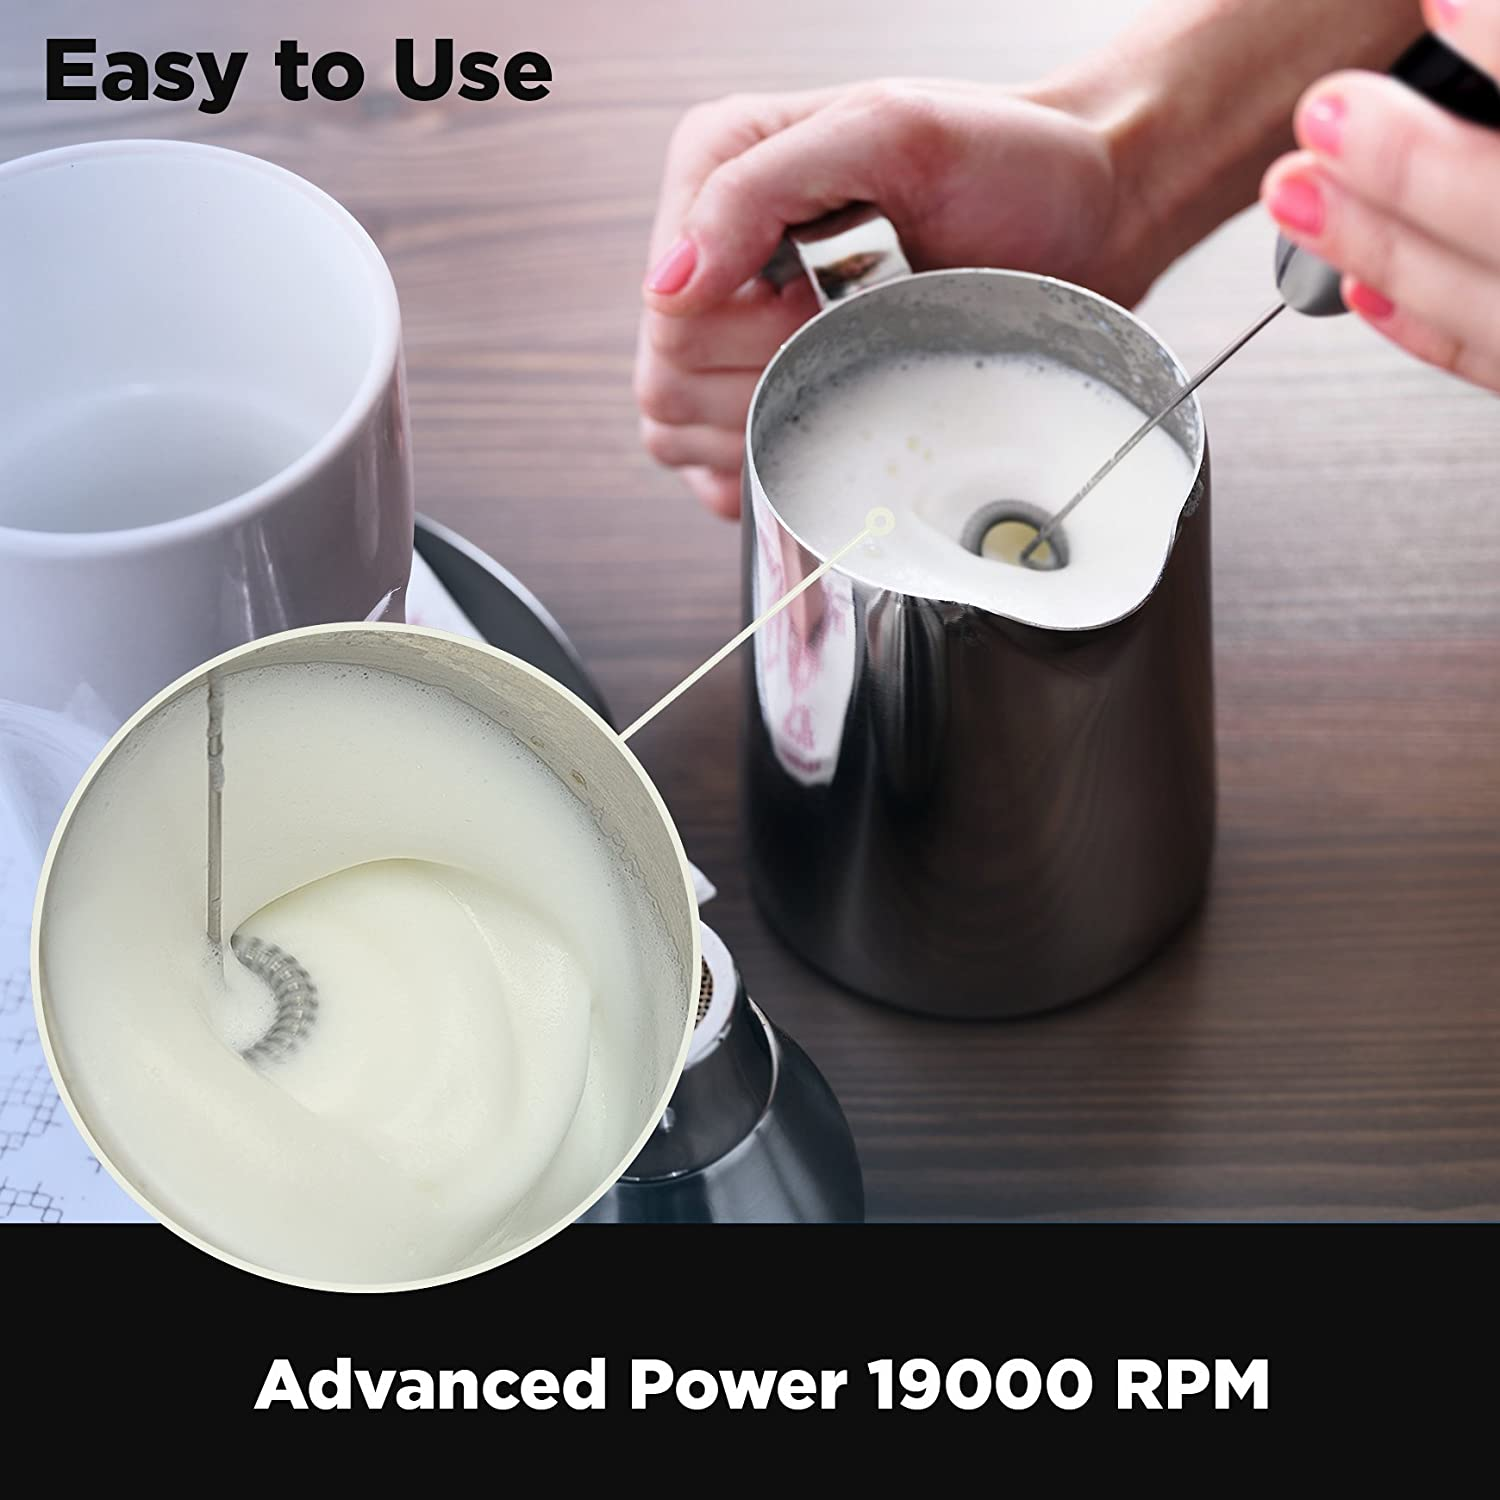 Electric Milk Frother Handheld Whisk Battery Operated Coffee Frother Best Soya Milk Mixer Powerful Latte Cappuccino Frother Wand Free eBook Hot Milk Foam Maker Extra Whisk